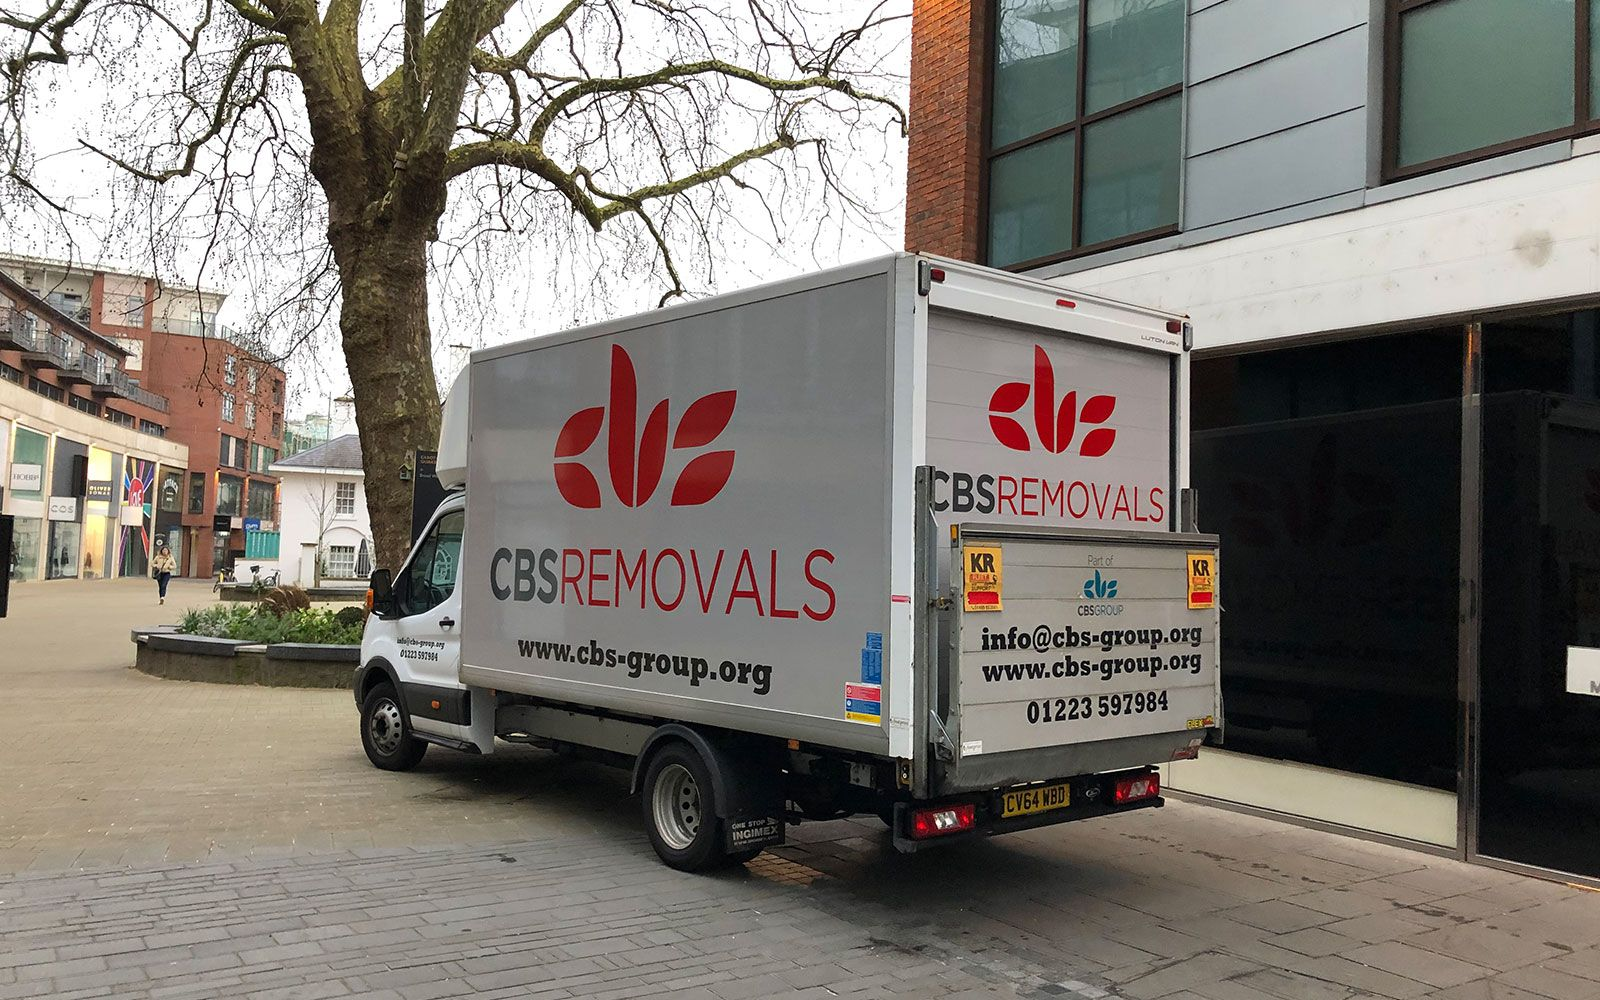 CBS Removals van covering Bedfordshire, Cambridgeshire and Peterborough